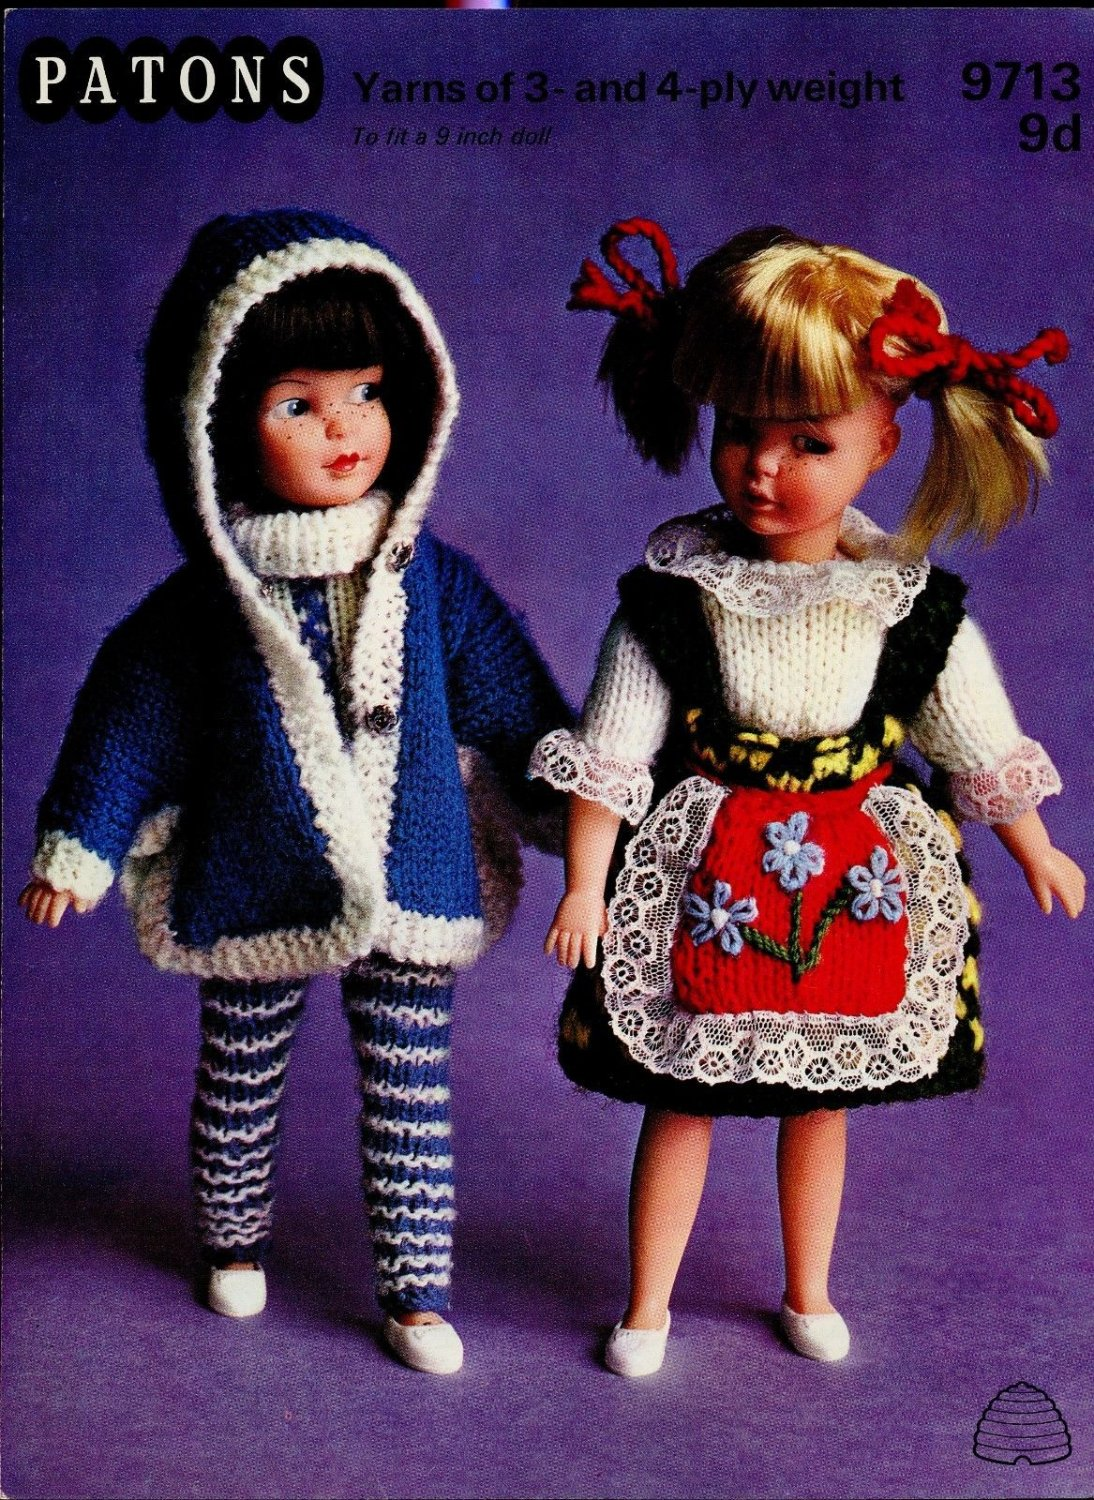 """PATONS PATTERN 9713 9d 9"""" Dolls Yarns of 3 and 4ply weight knitting pattern"""